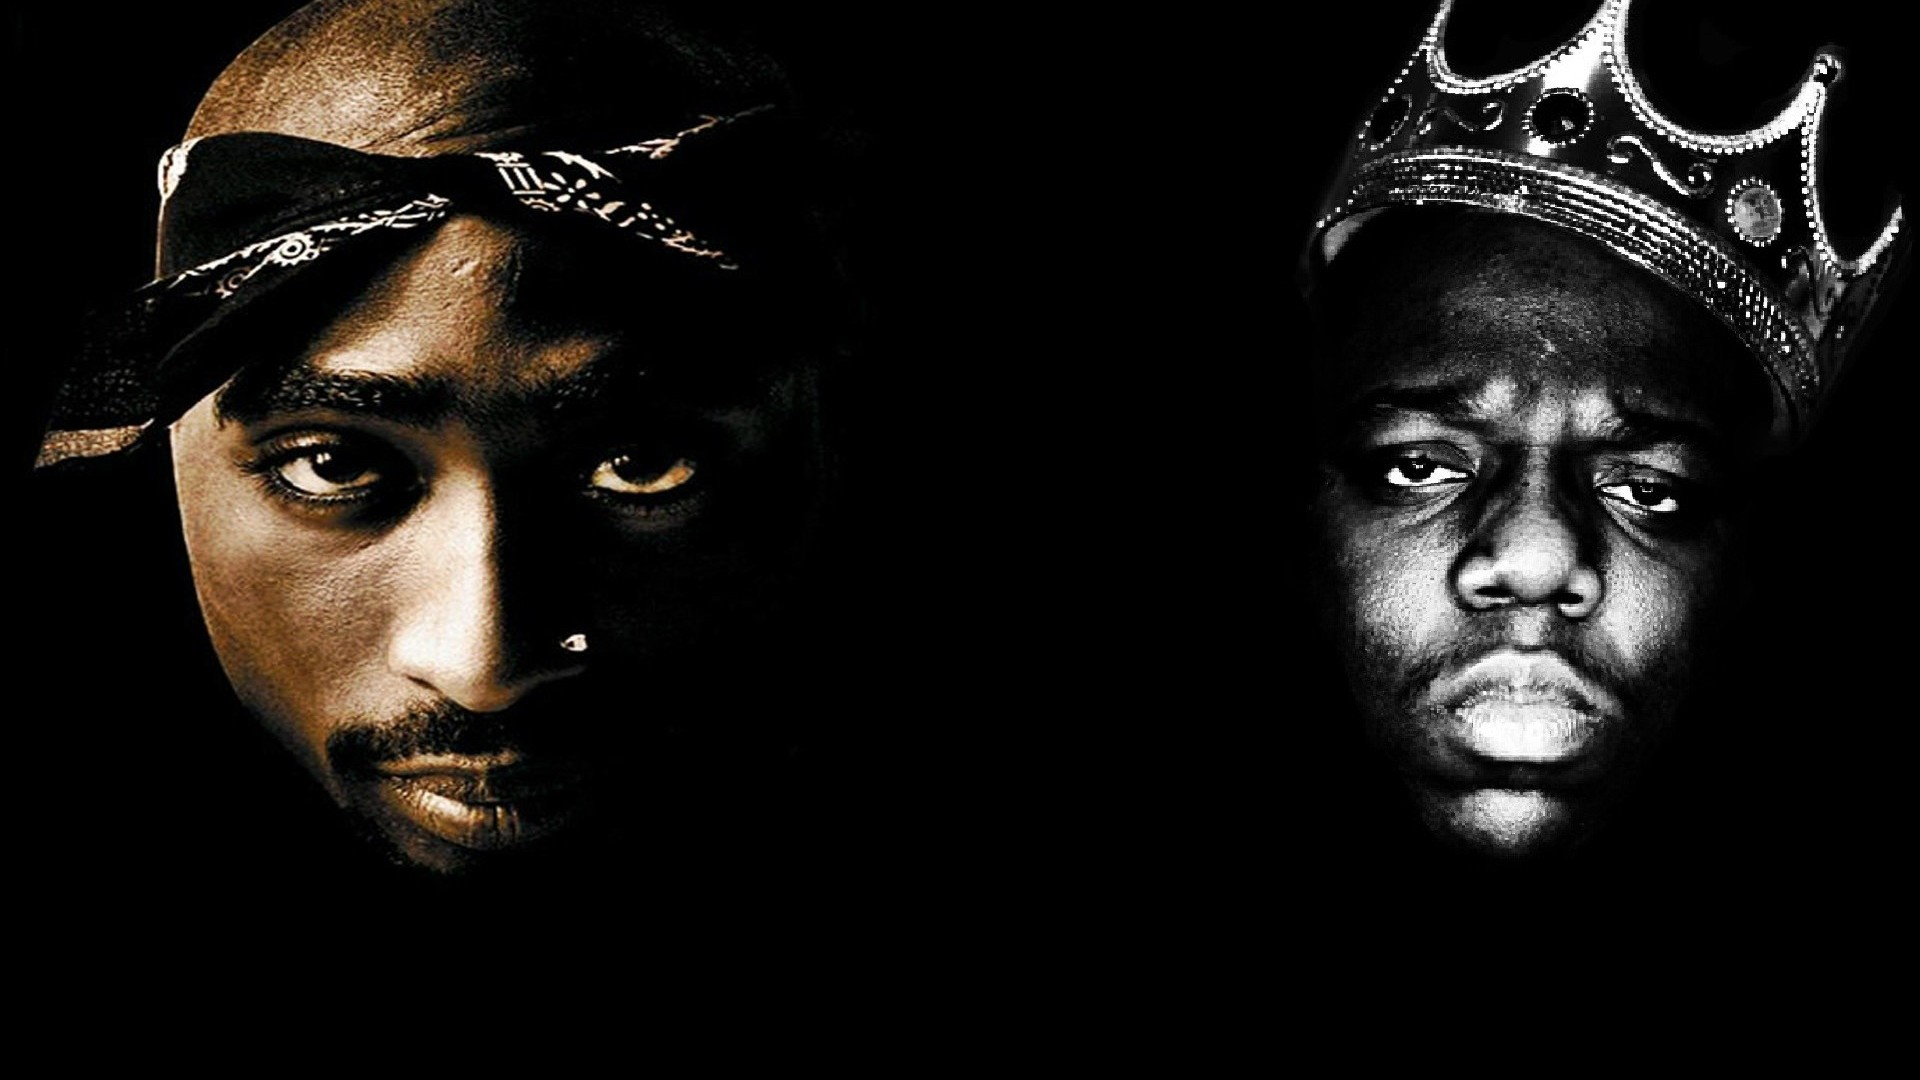 TUPAC BIGGIE SMALLS gangsta rapper rap hip hop f wallpaper 1920x1080 1920x1080